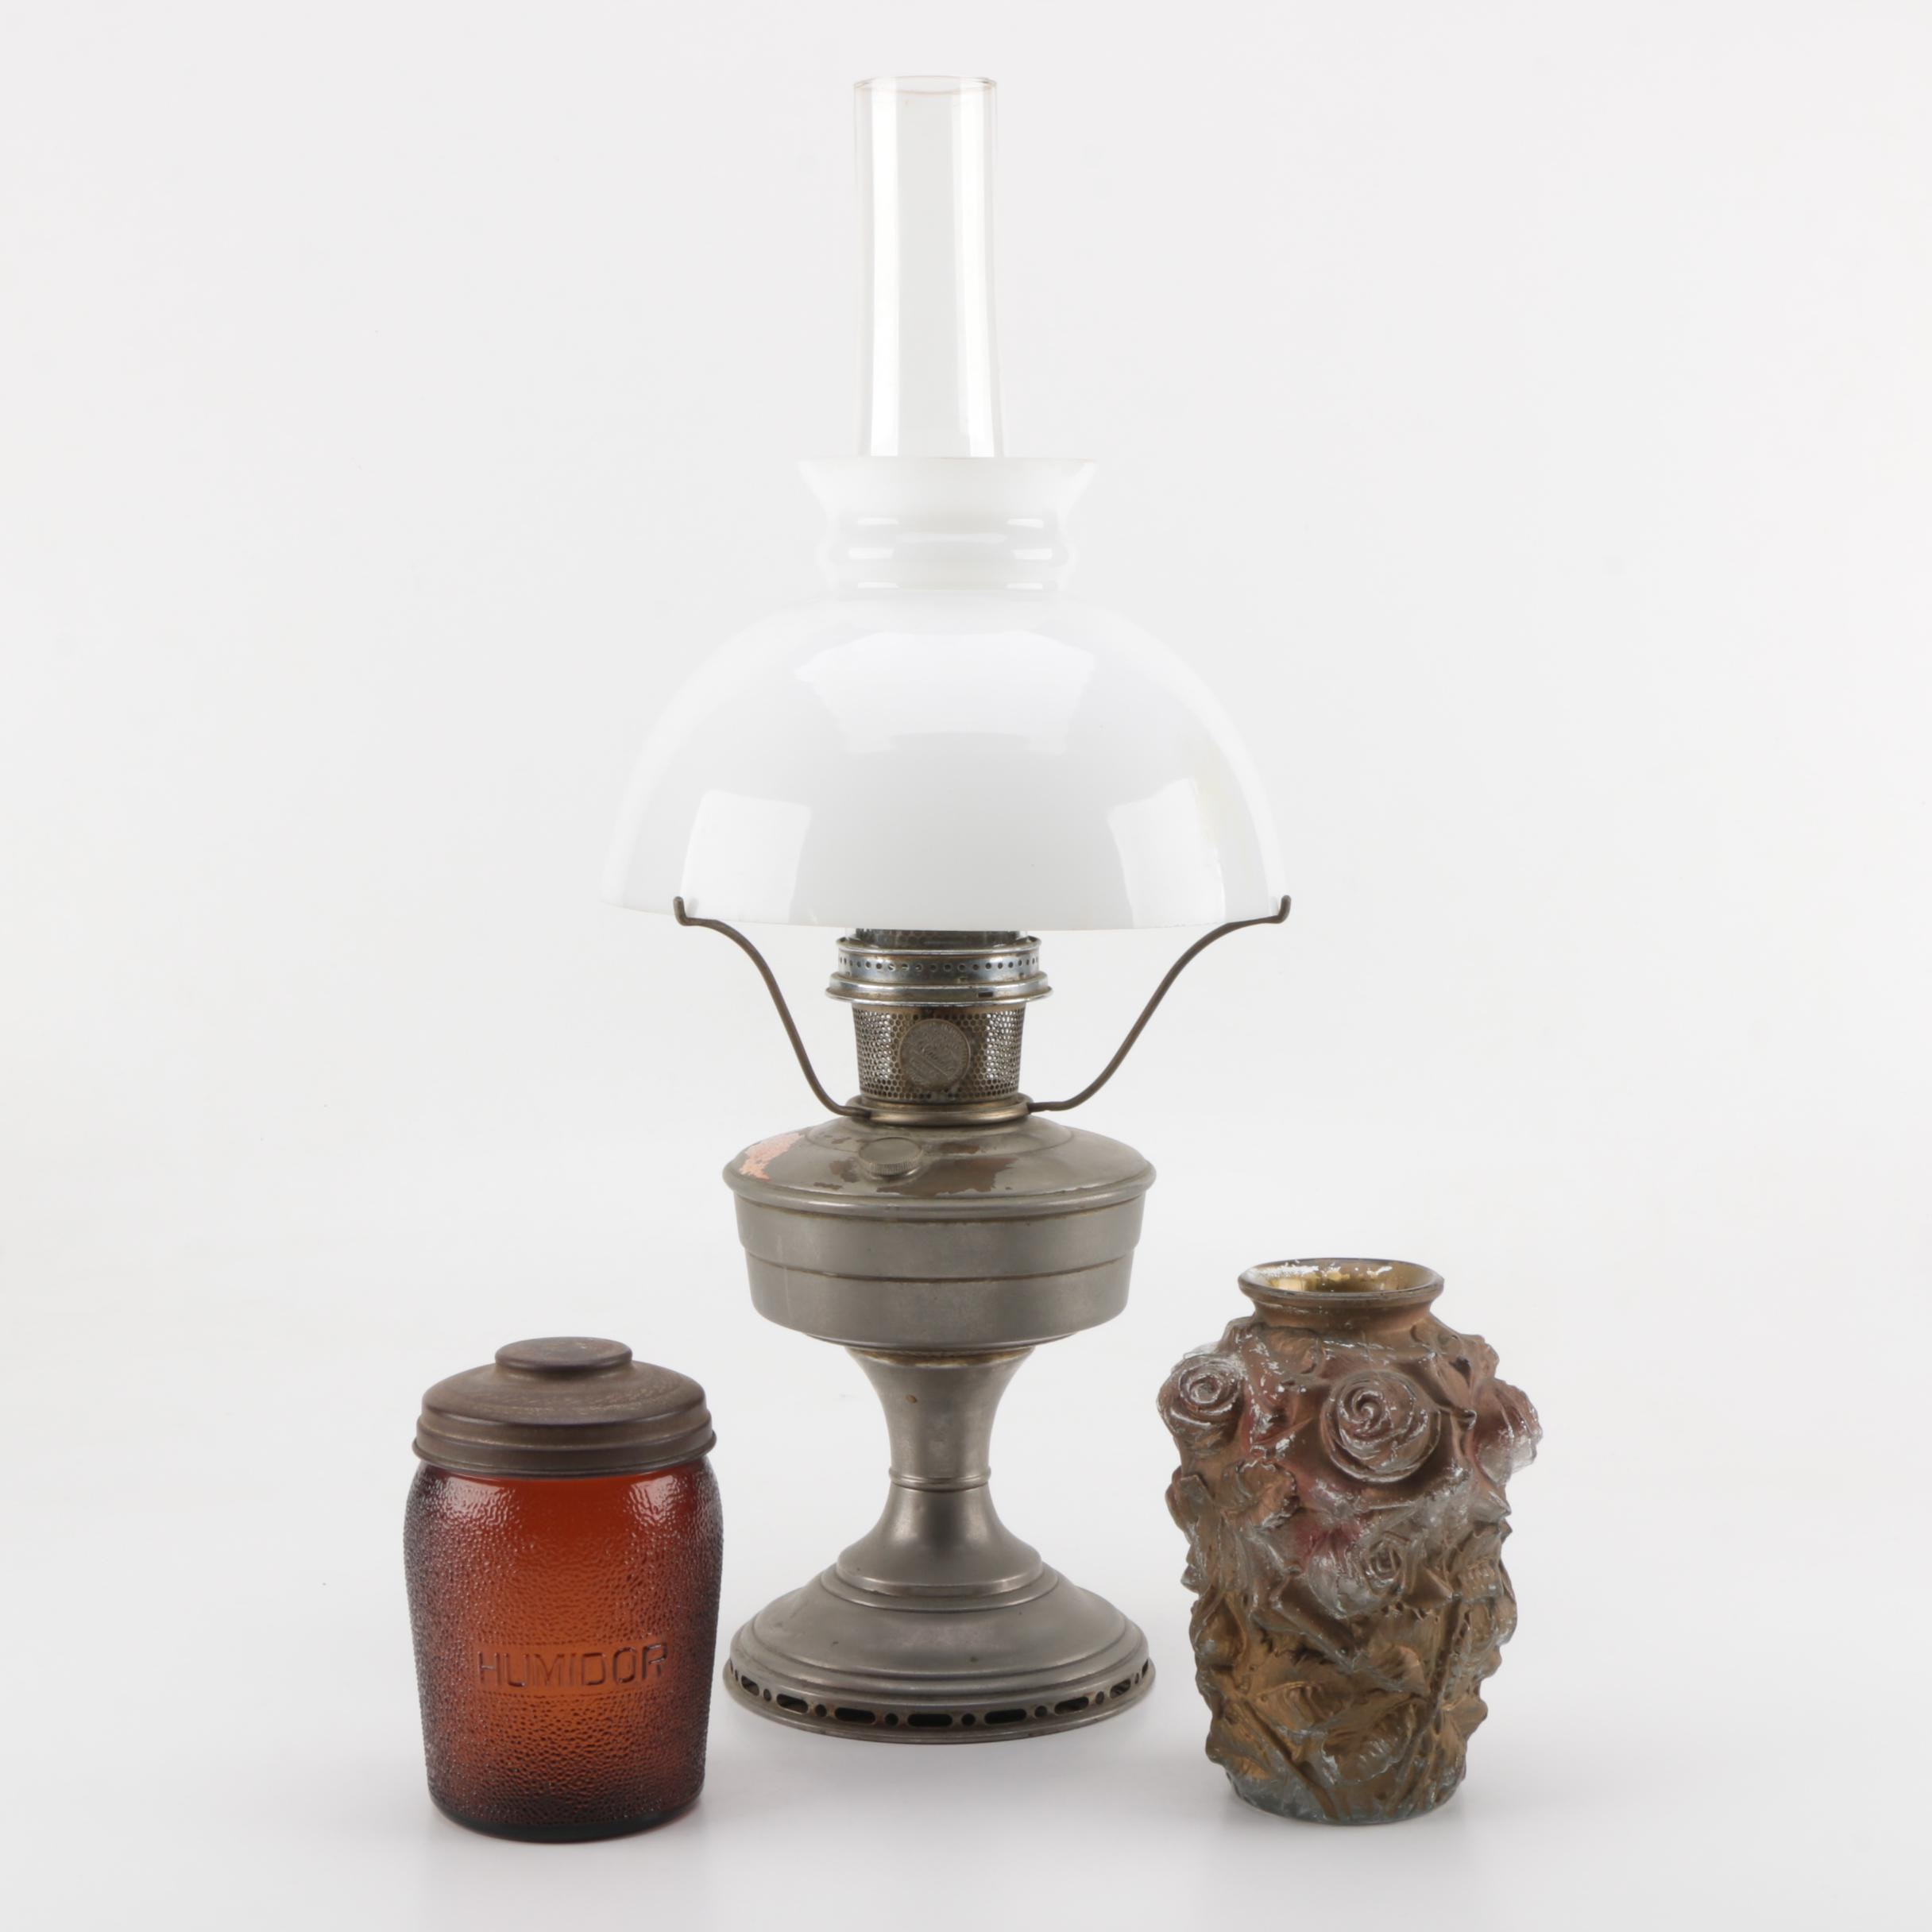 Aladdin Industries Model 12 Oil Lamp with Glass Vase and Humidor